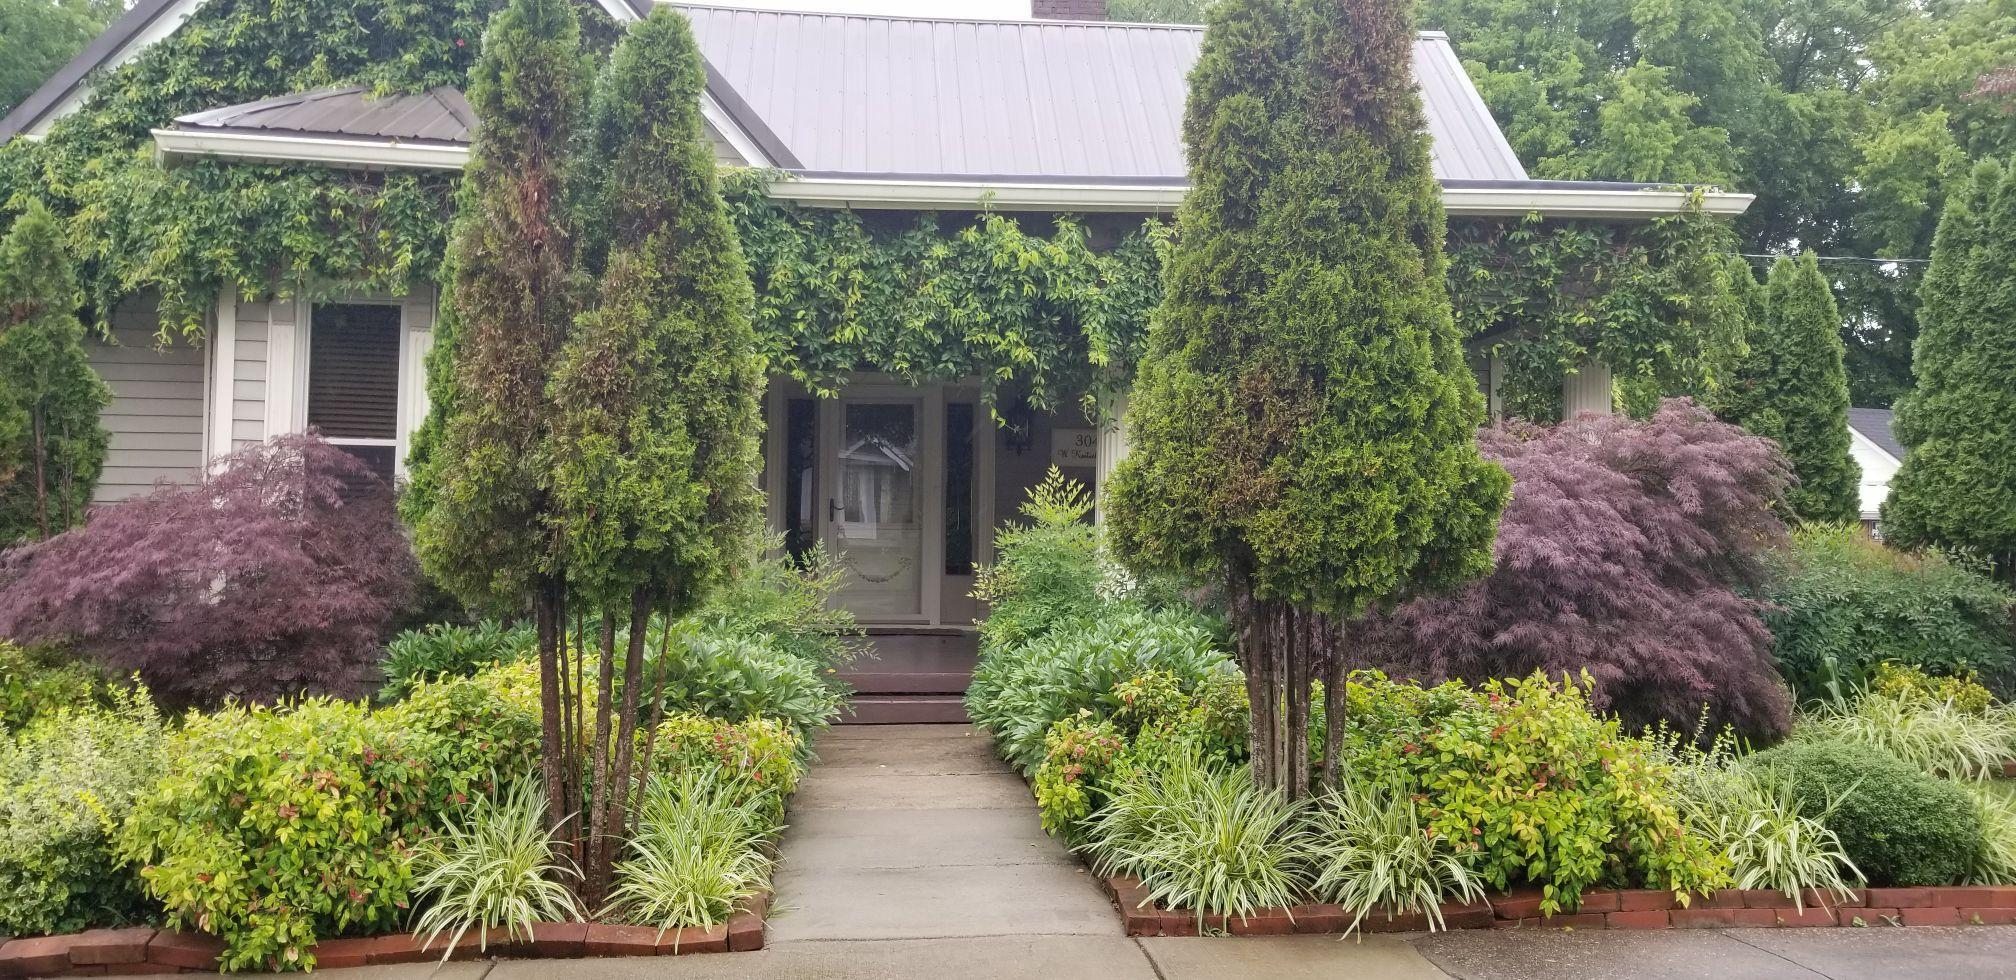 304 West Kentucky Avenue, Franklin, KY 42134 - Franklin, KY real estate listing